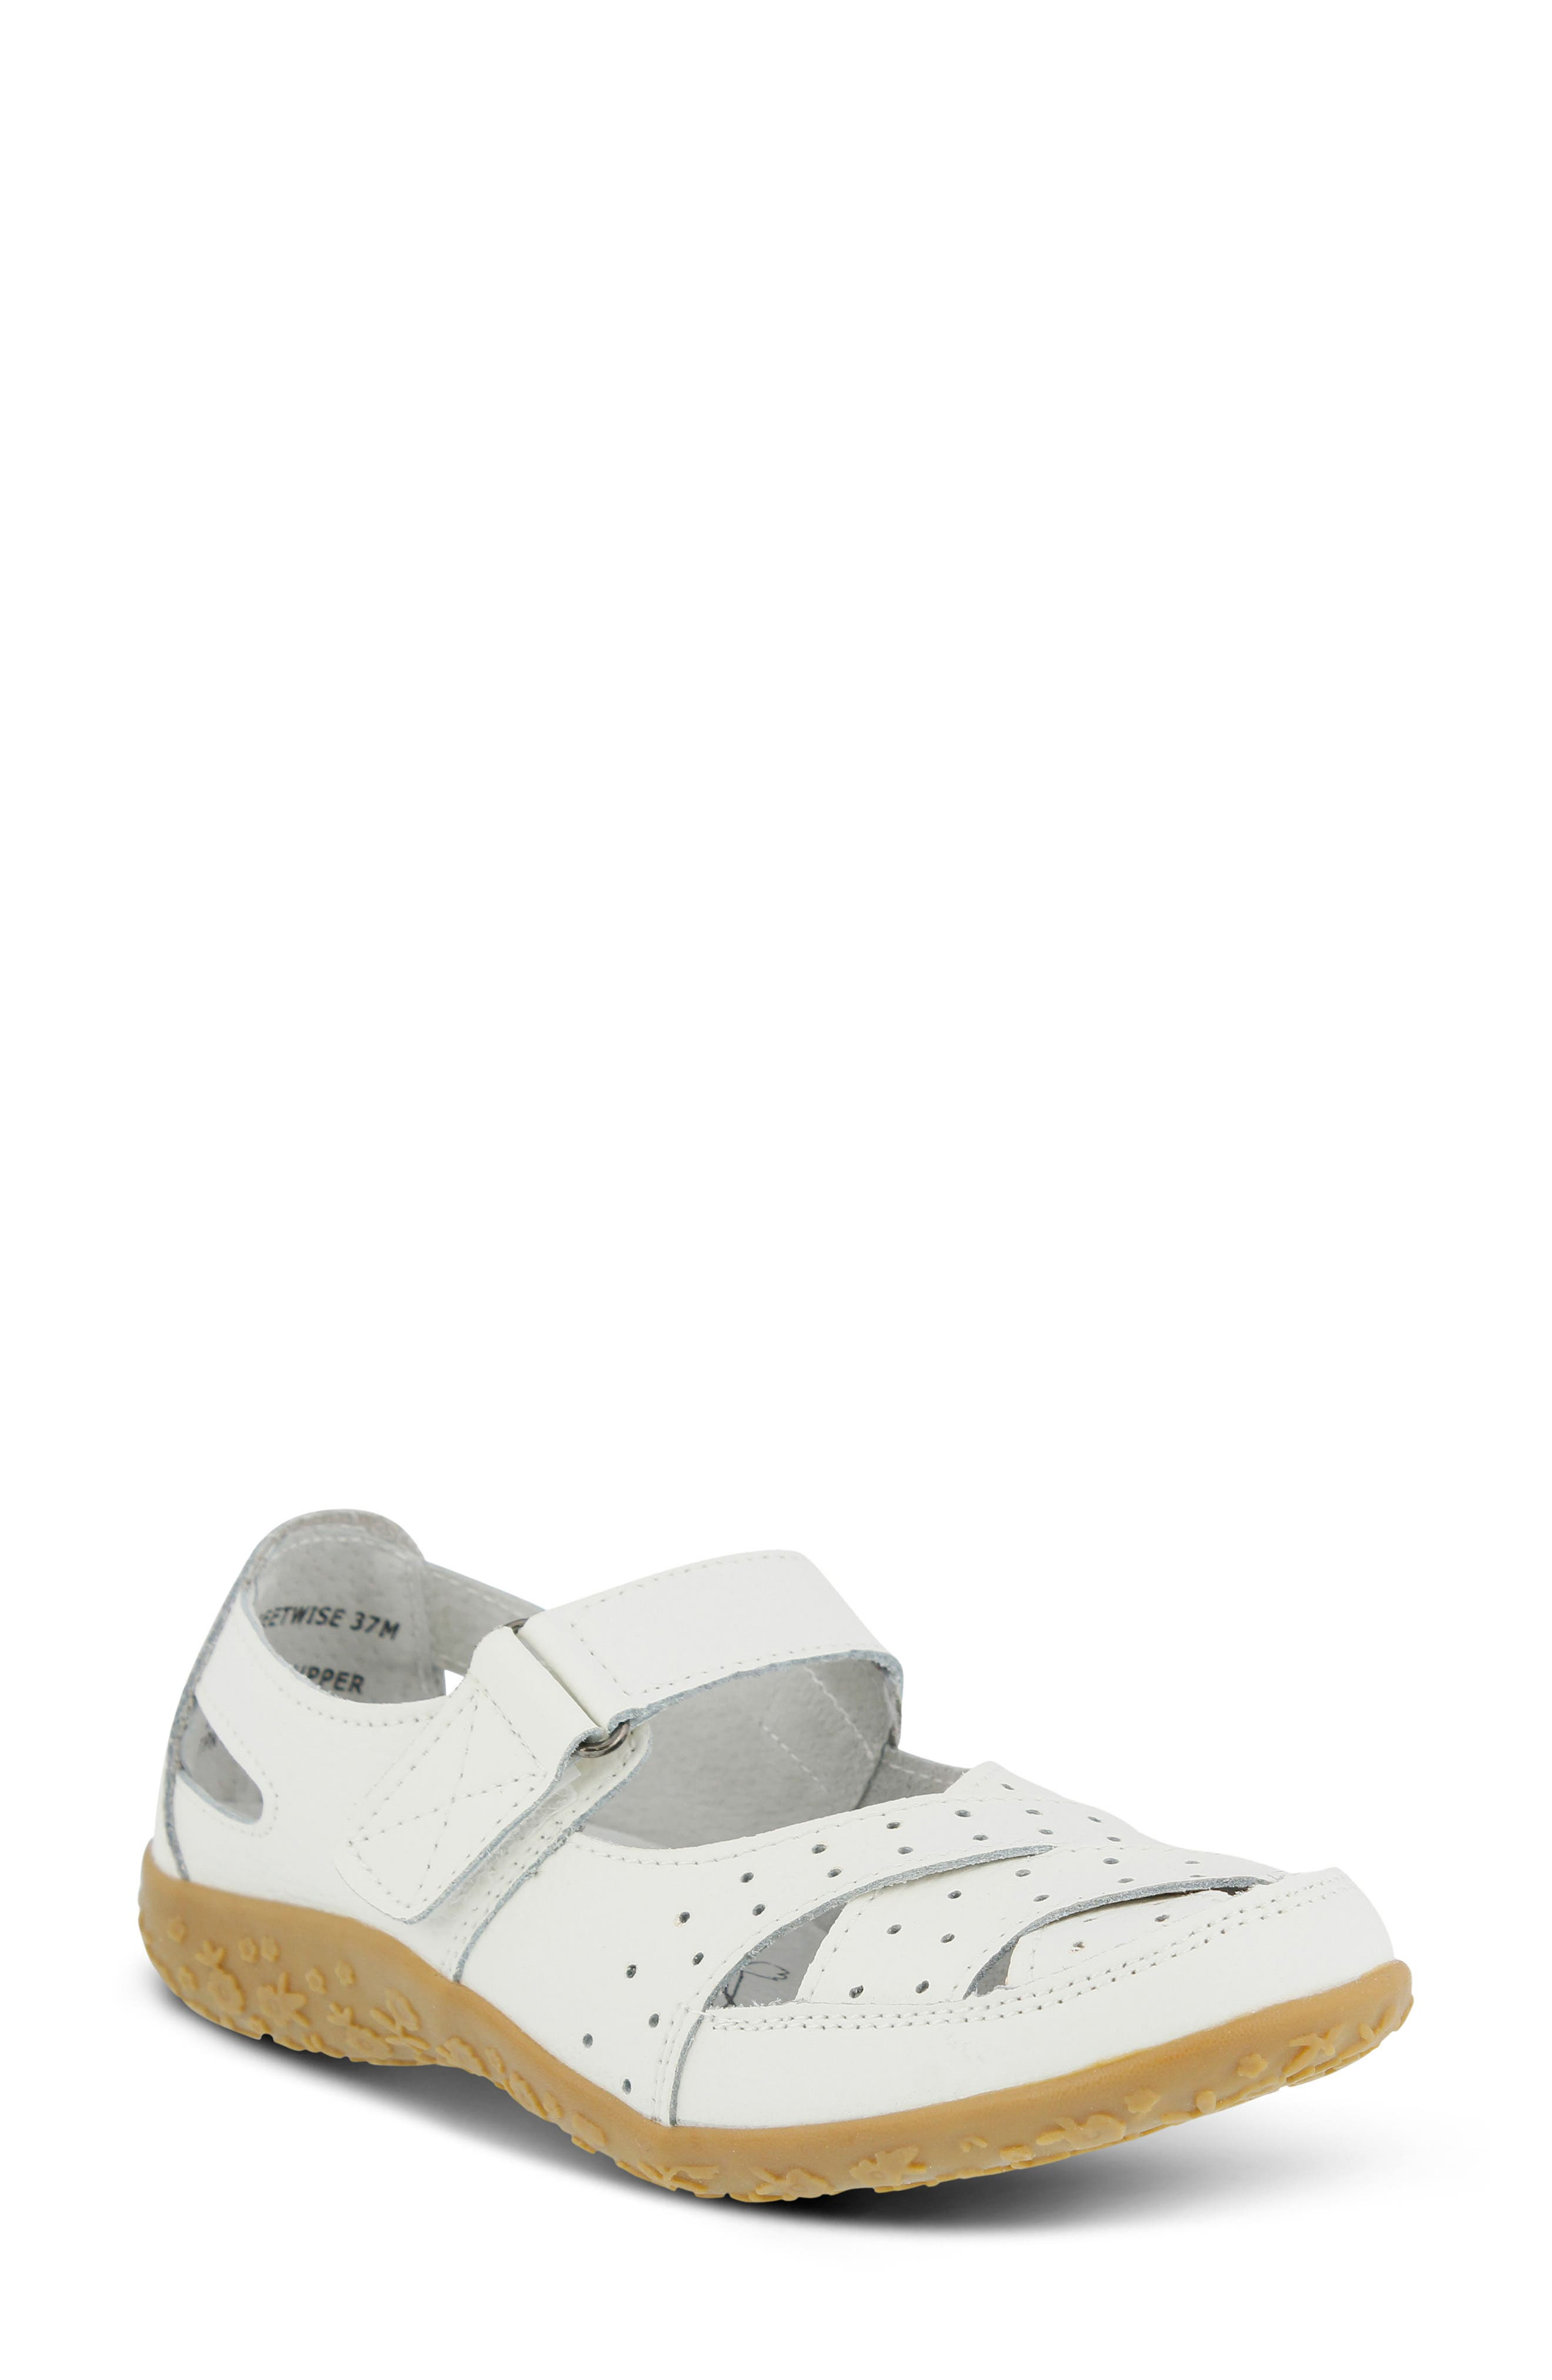 Streetwise Flat,                             Main thumbnail 1, color,                             White Leather